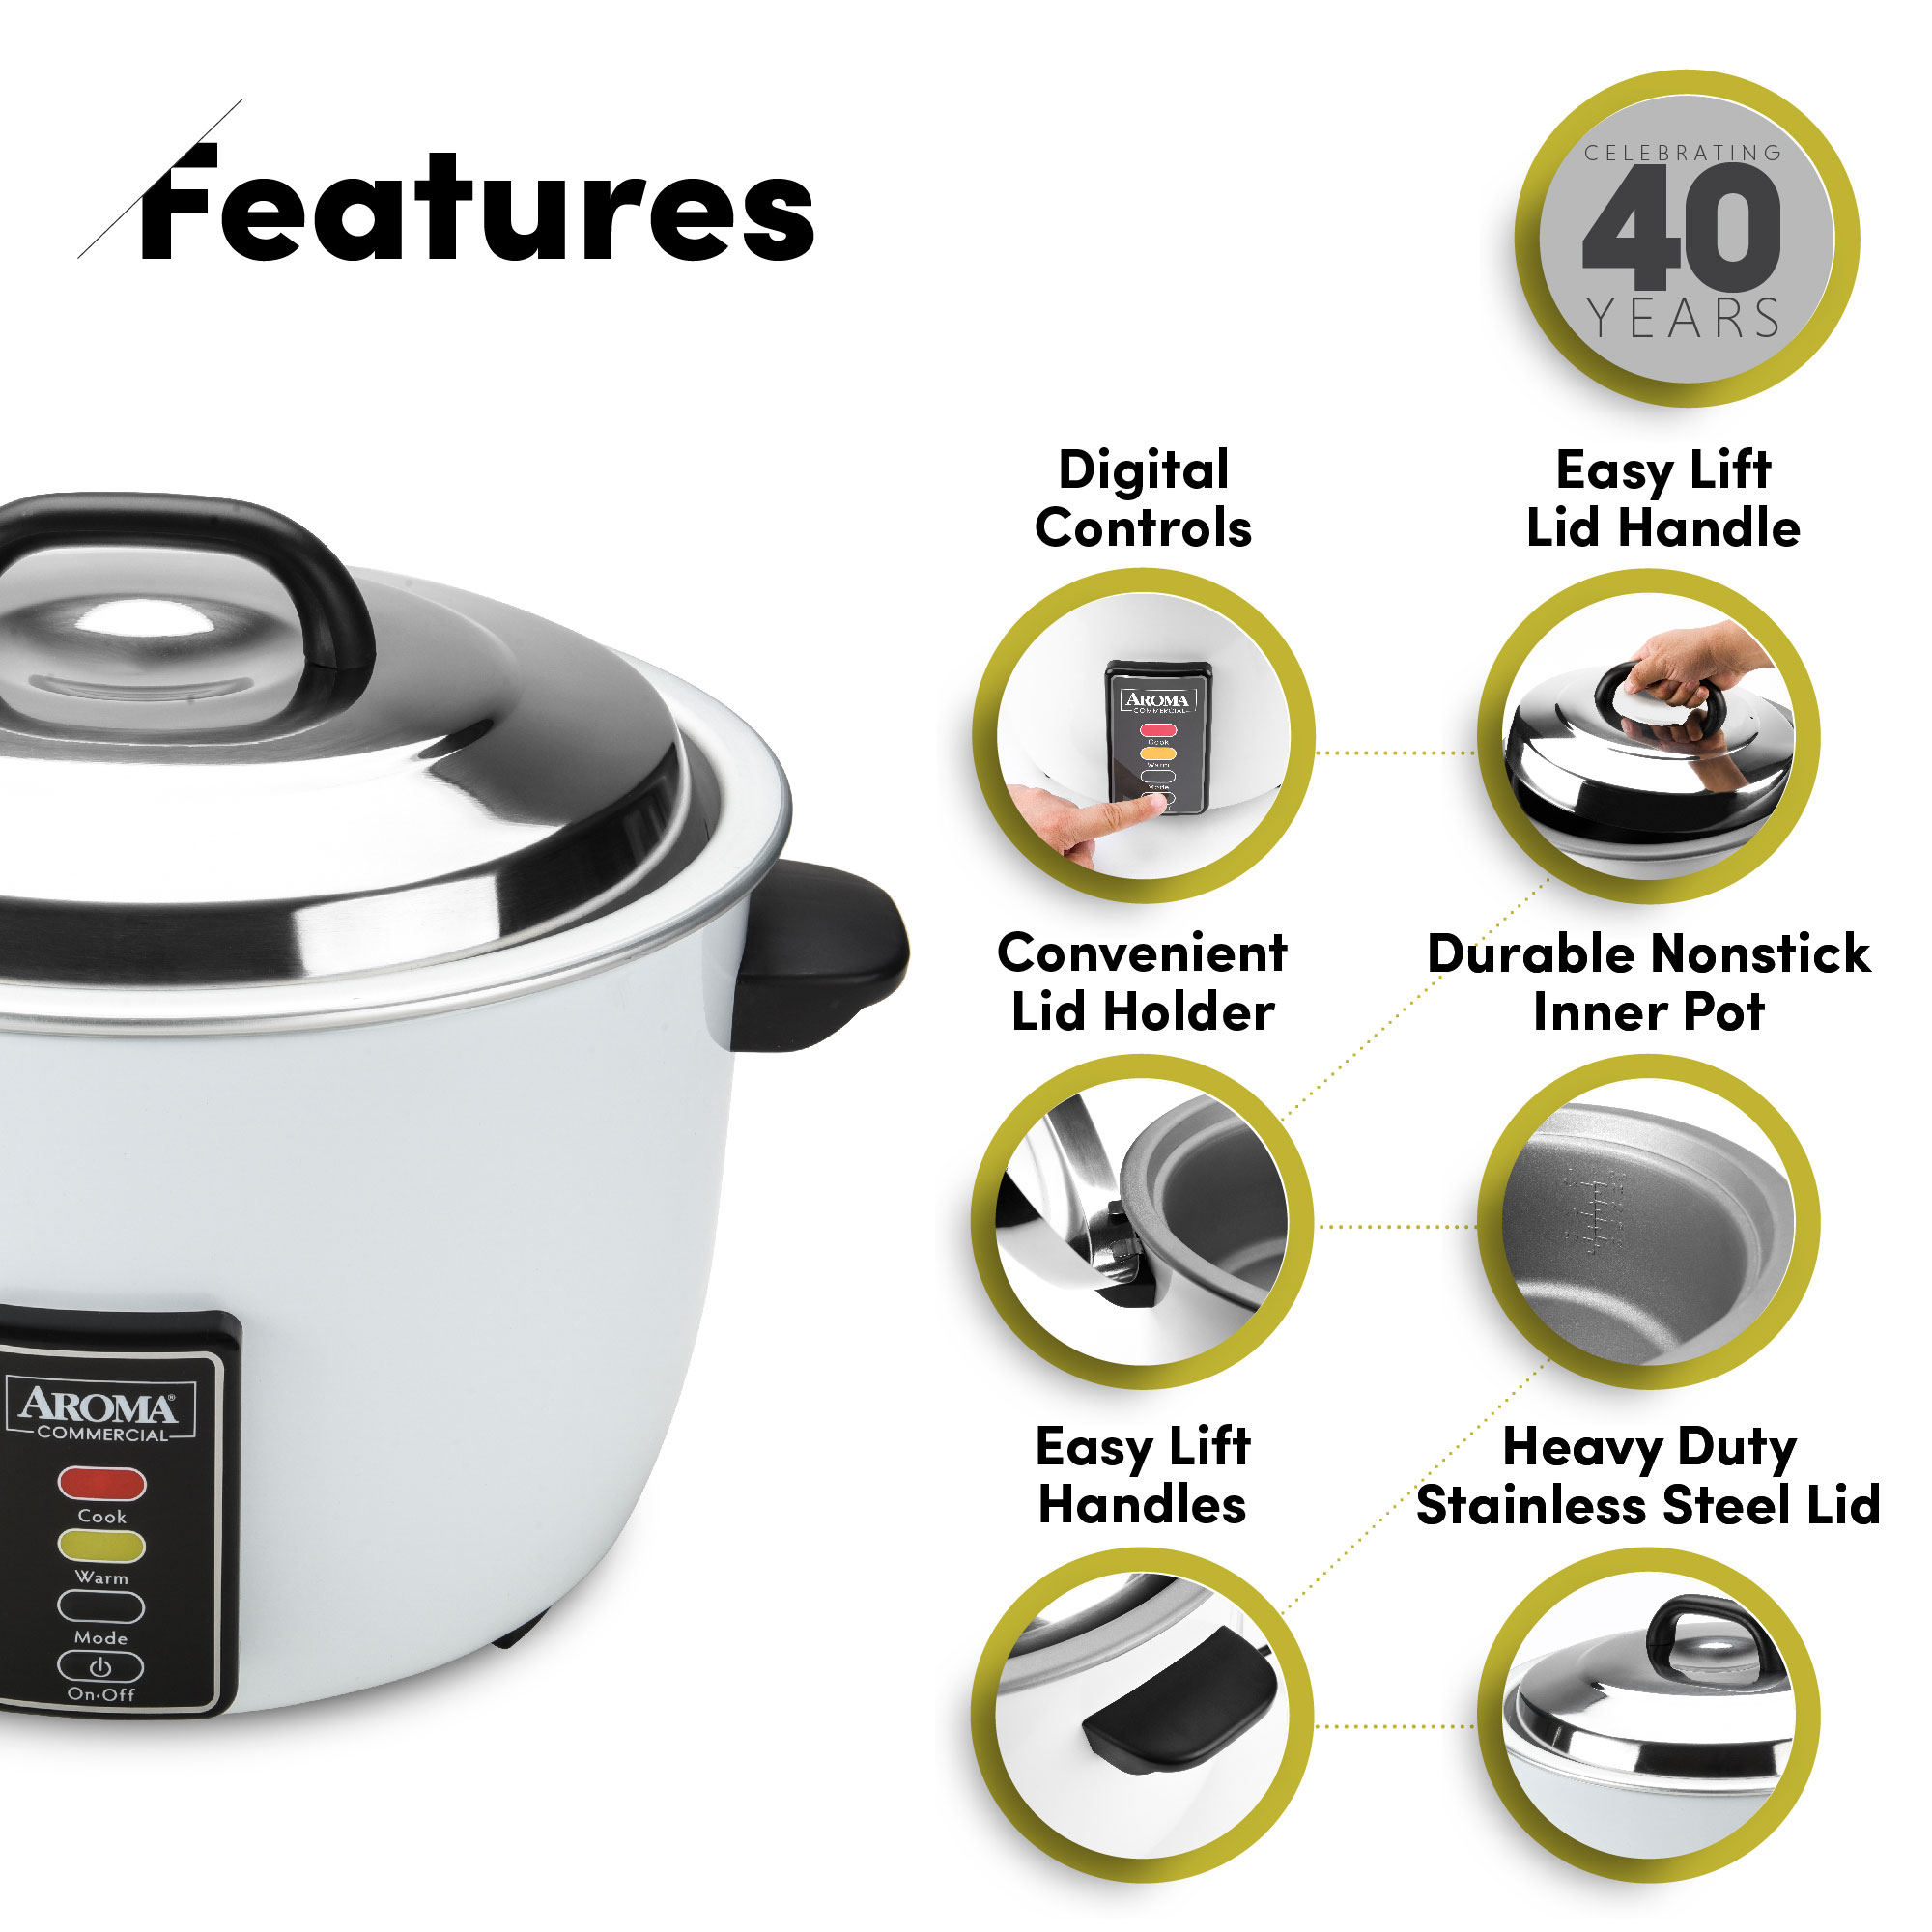 AROMA Commercial 48-cup (Cooked) Rice Cooker